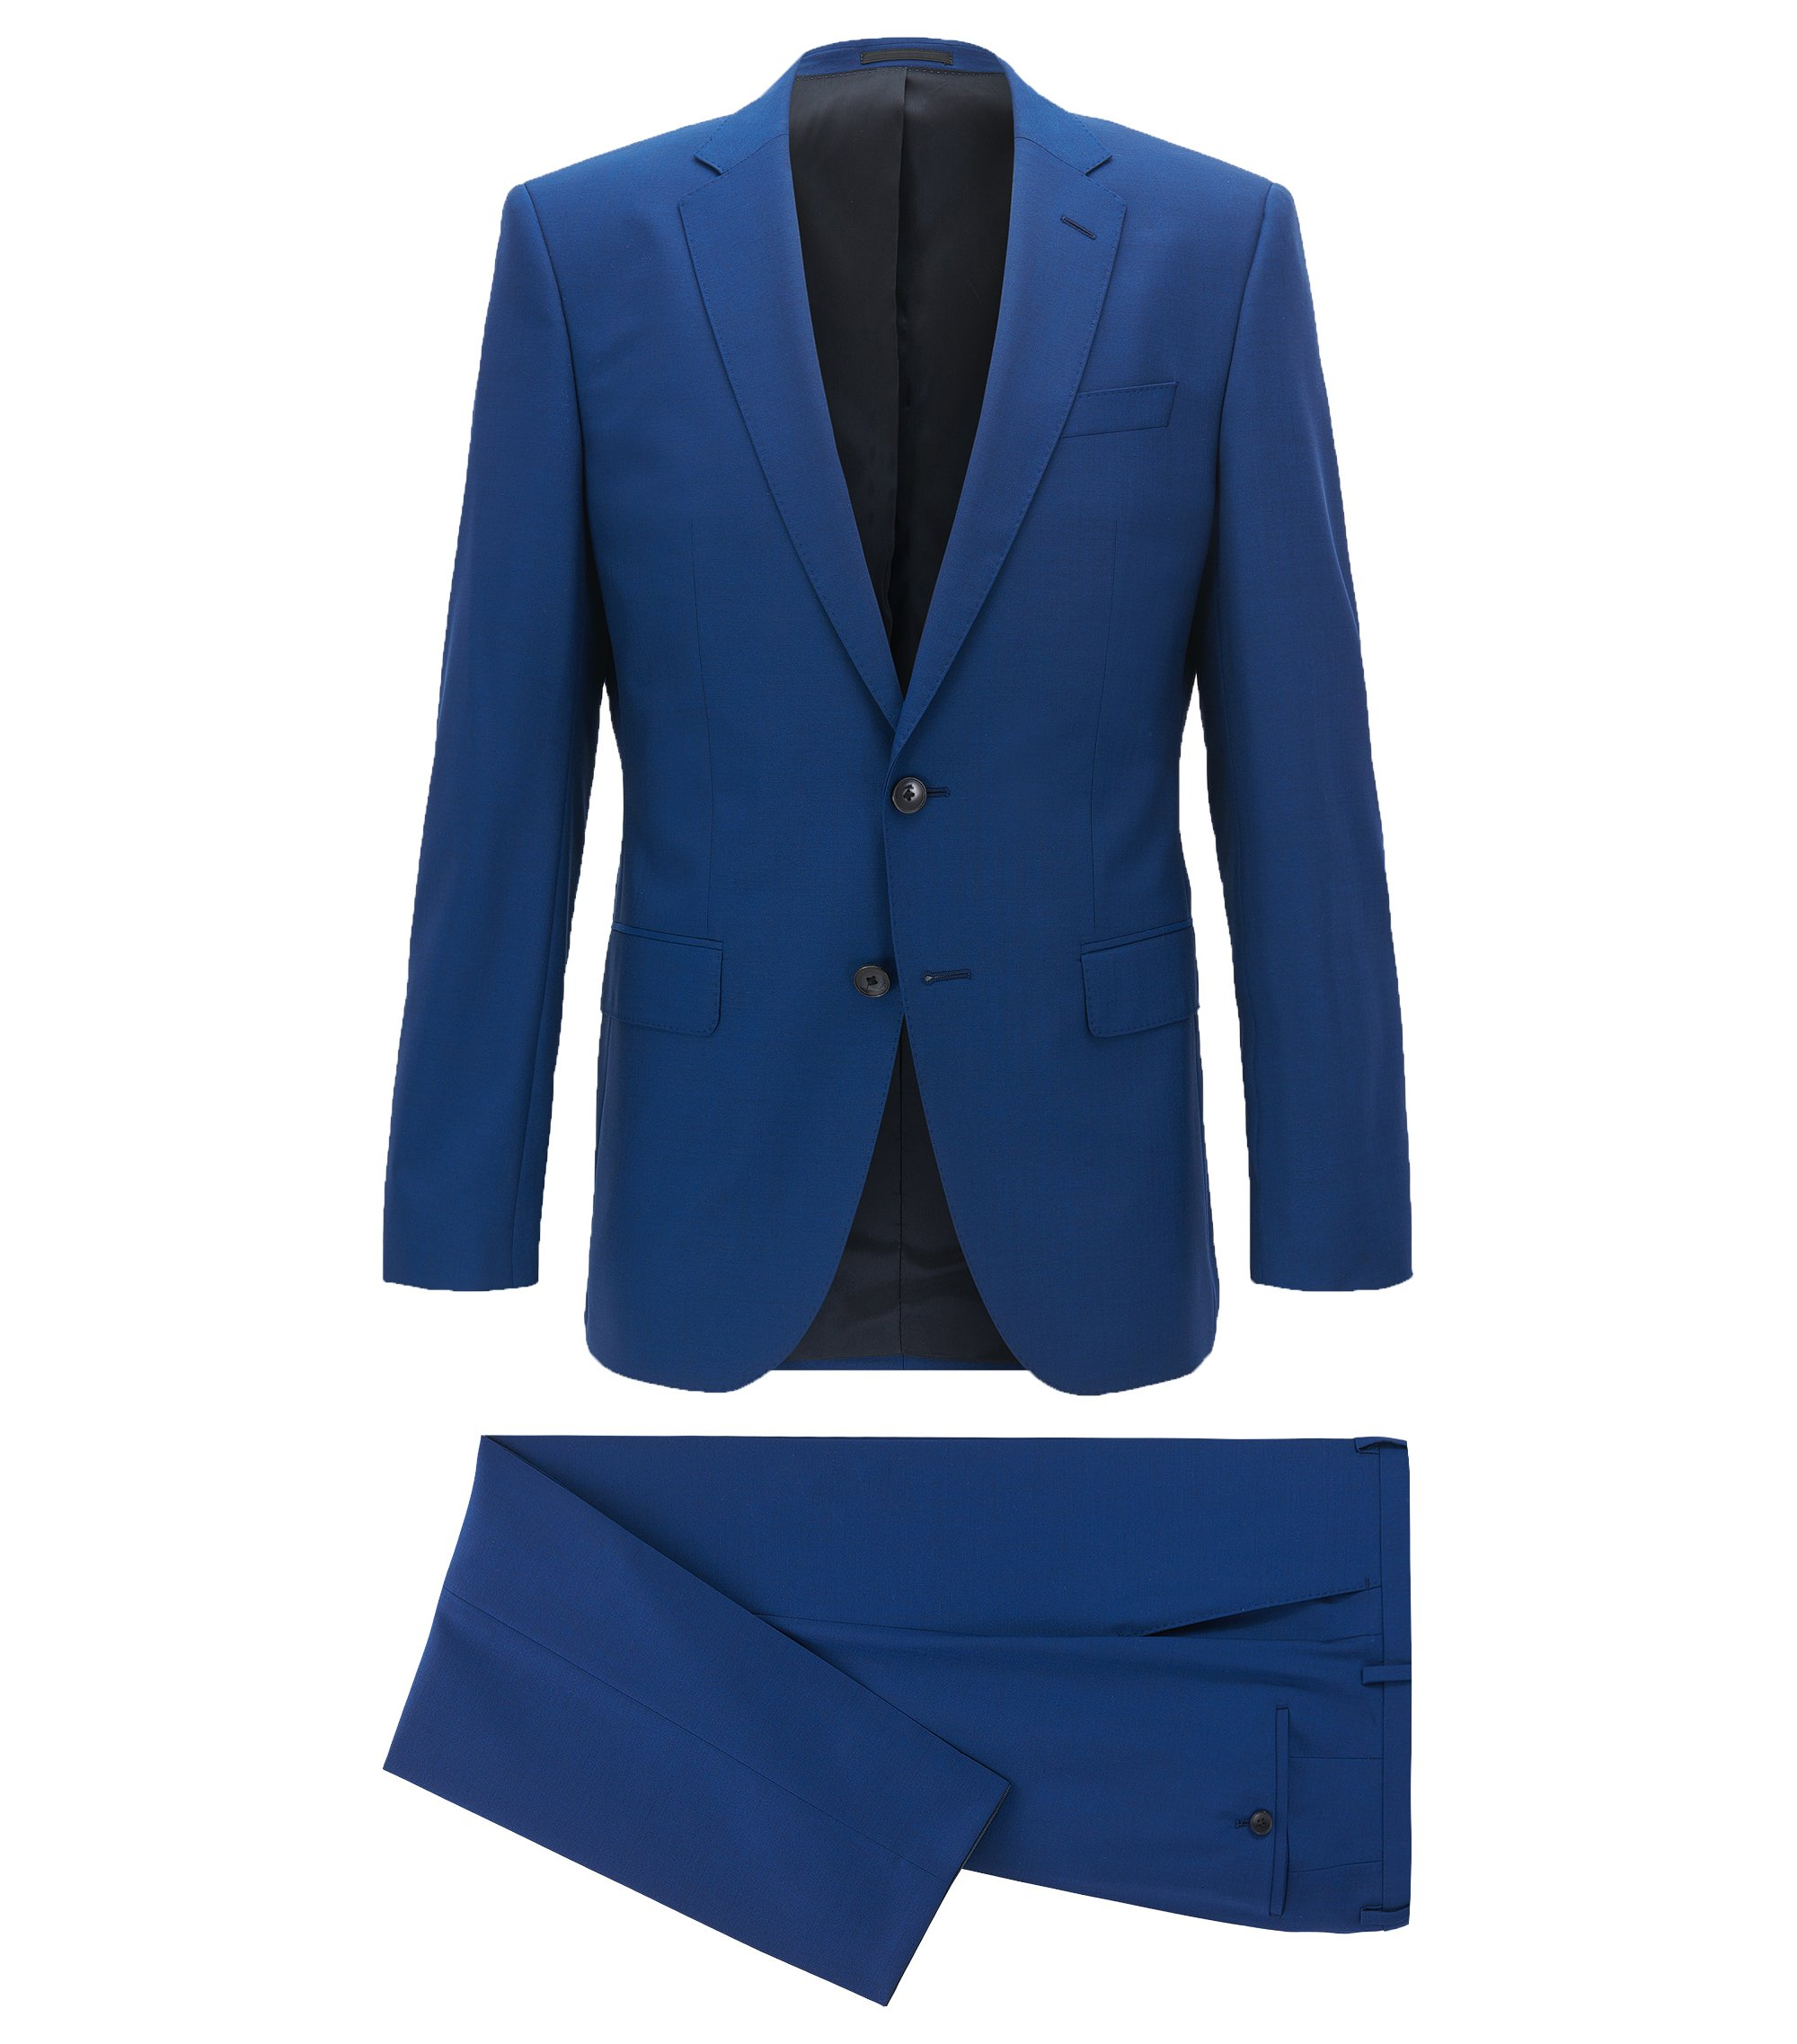 Virgin Wool Suit, Slim Fit | Huge/Genius, Blue